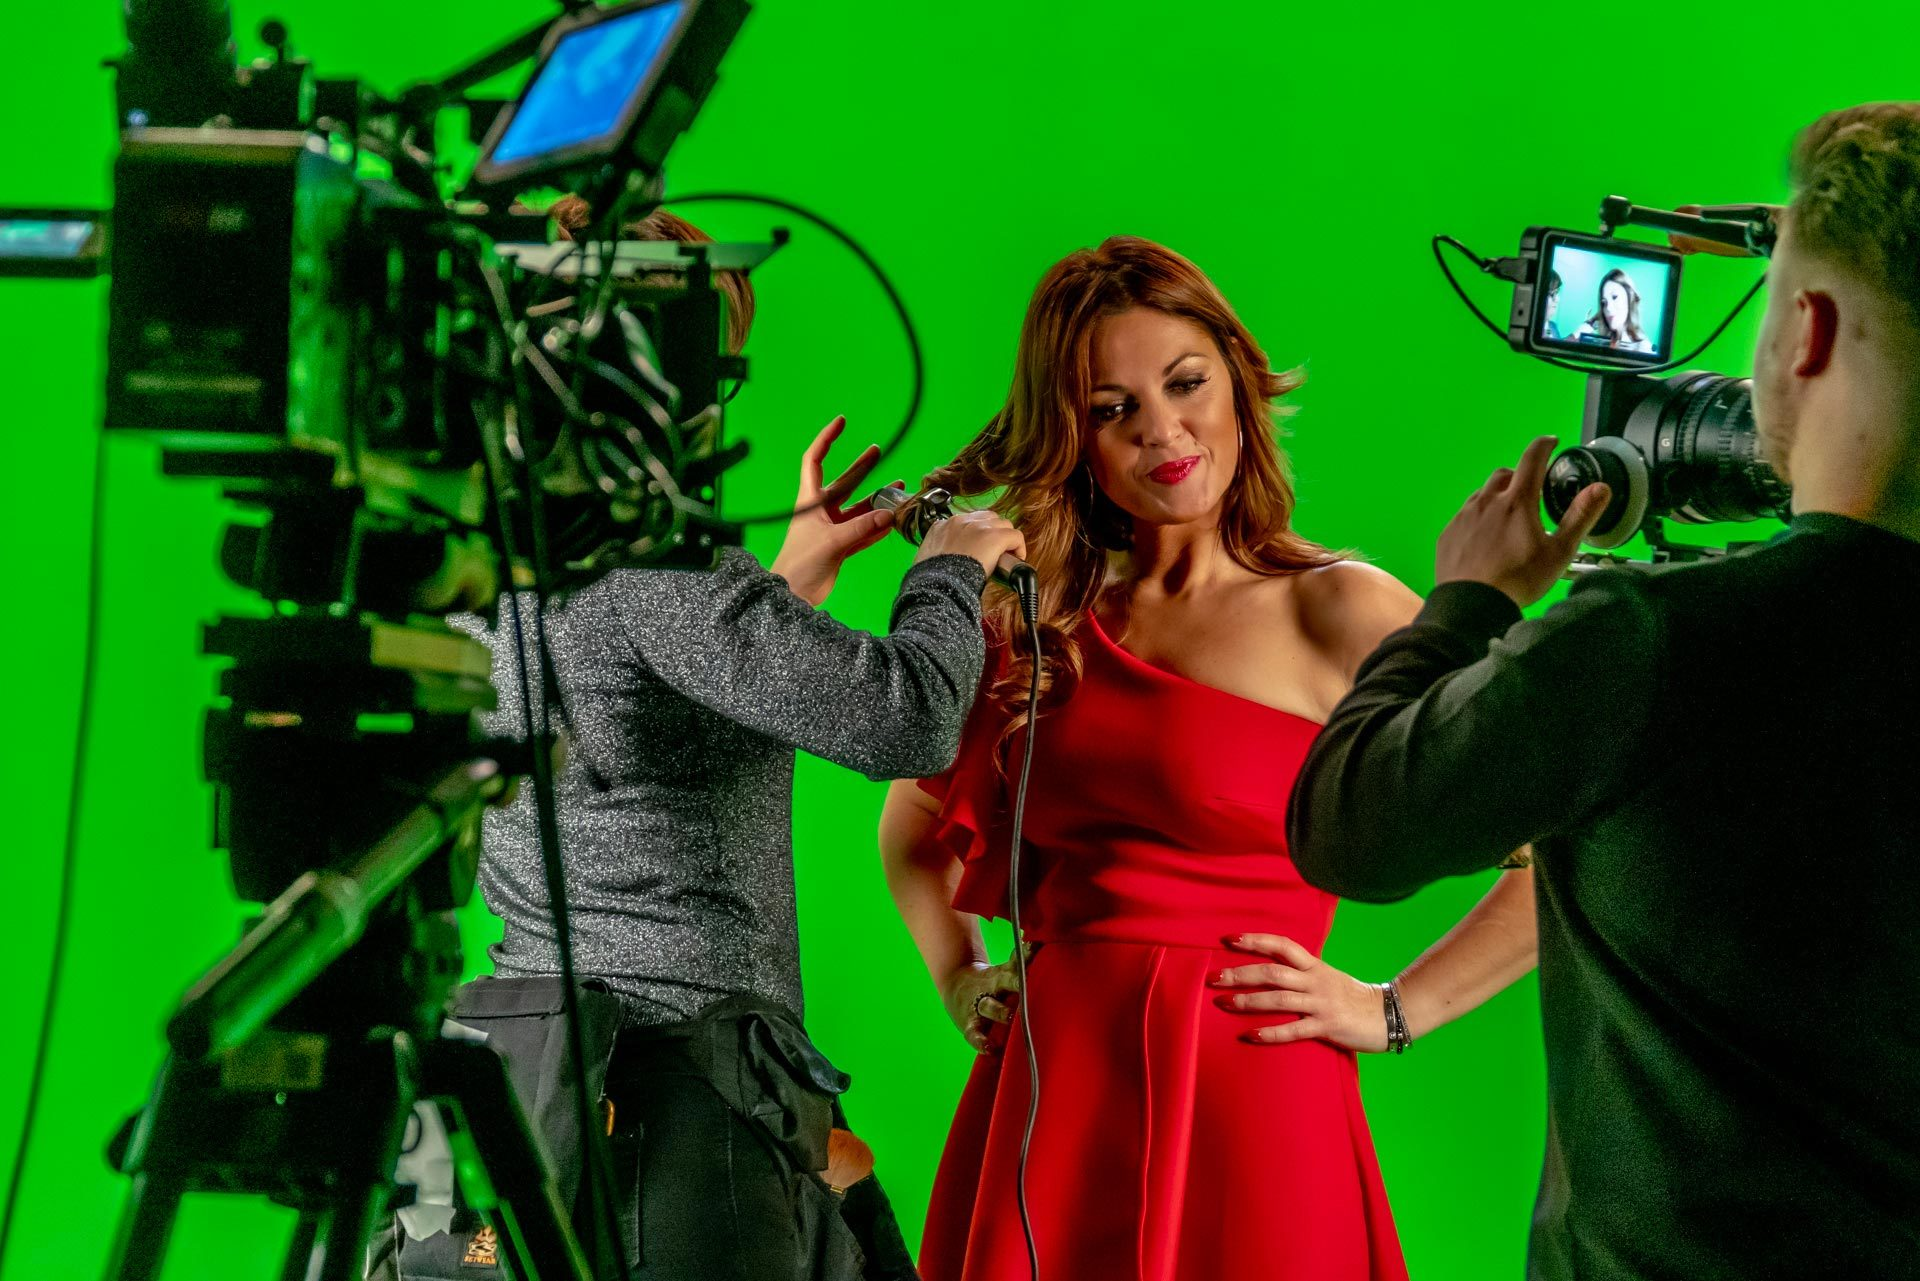 What we do television studio green key